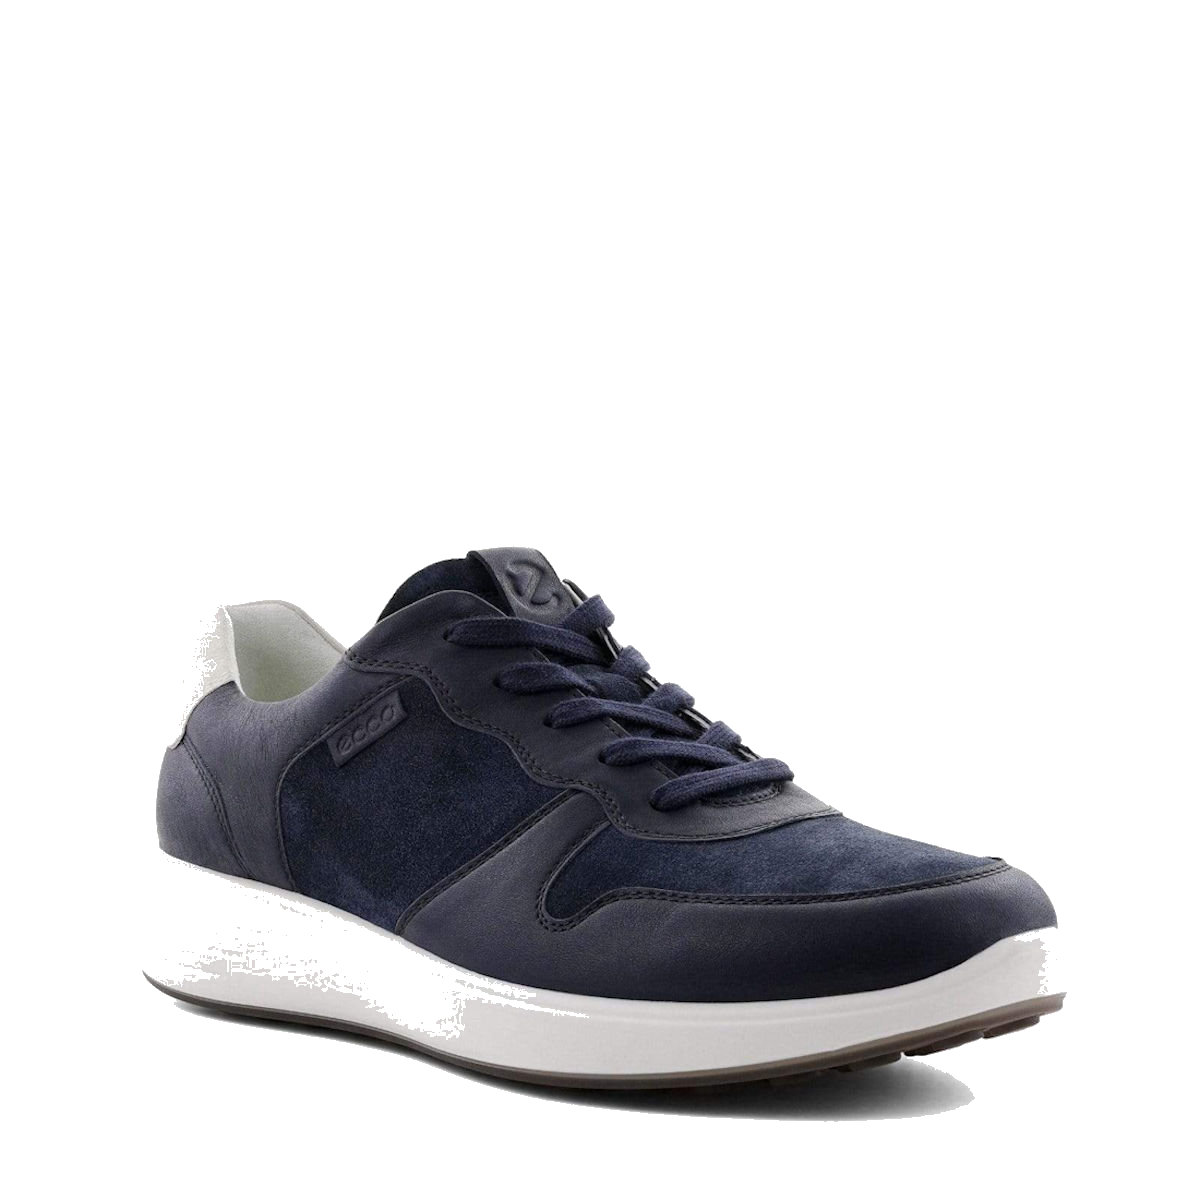 mens ECCO Soft 7- Navy Blue Runner Sneaker